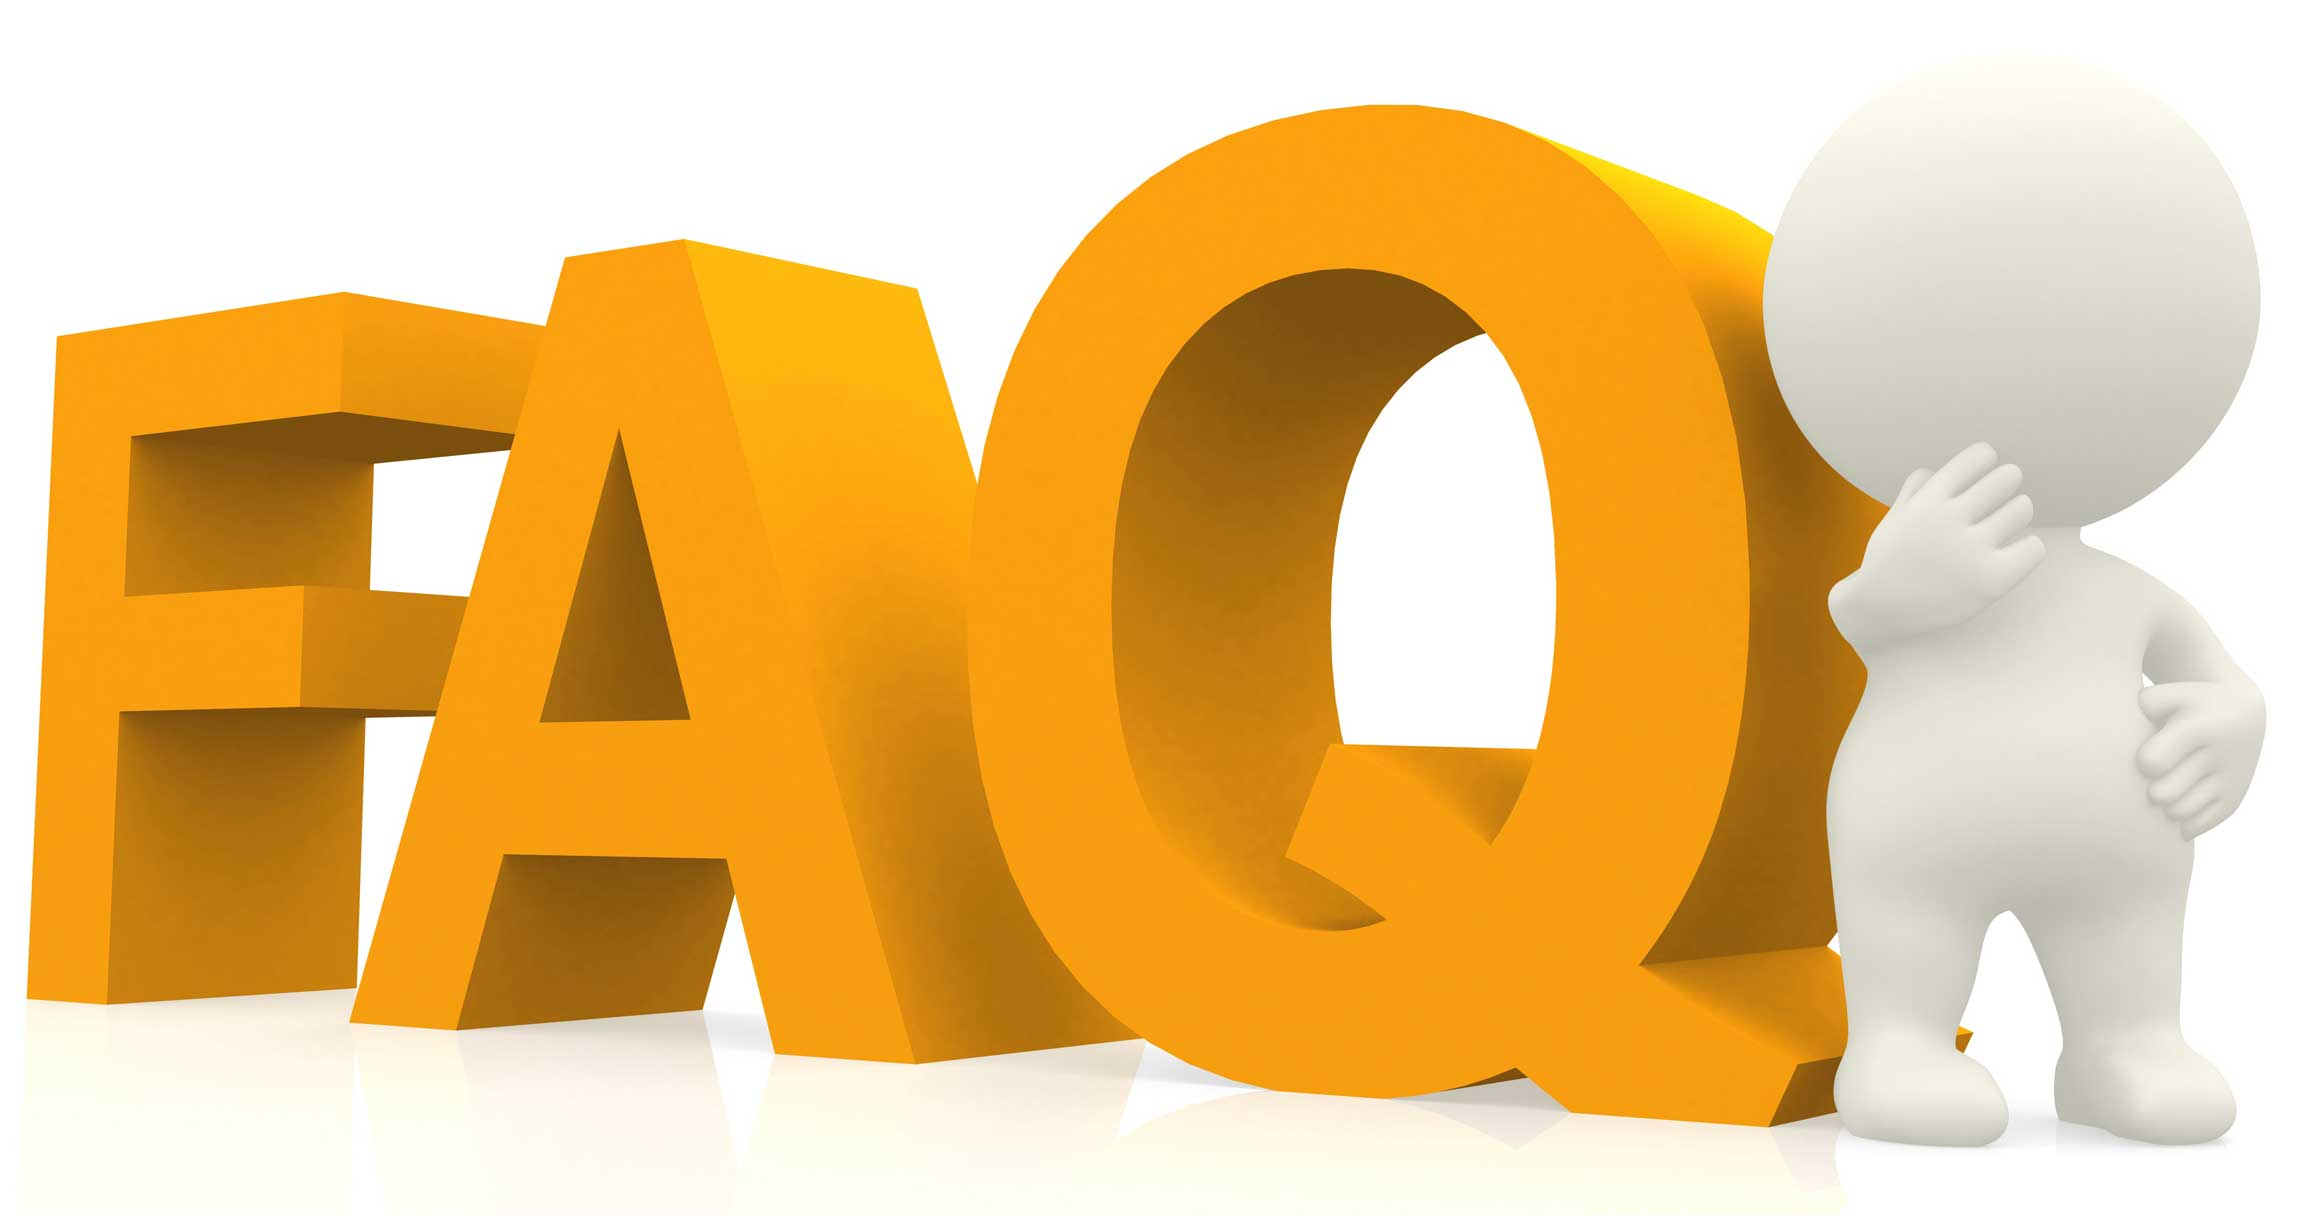 Frequently asked questions FAQ banner. Computer with